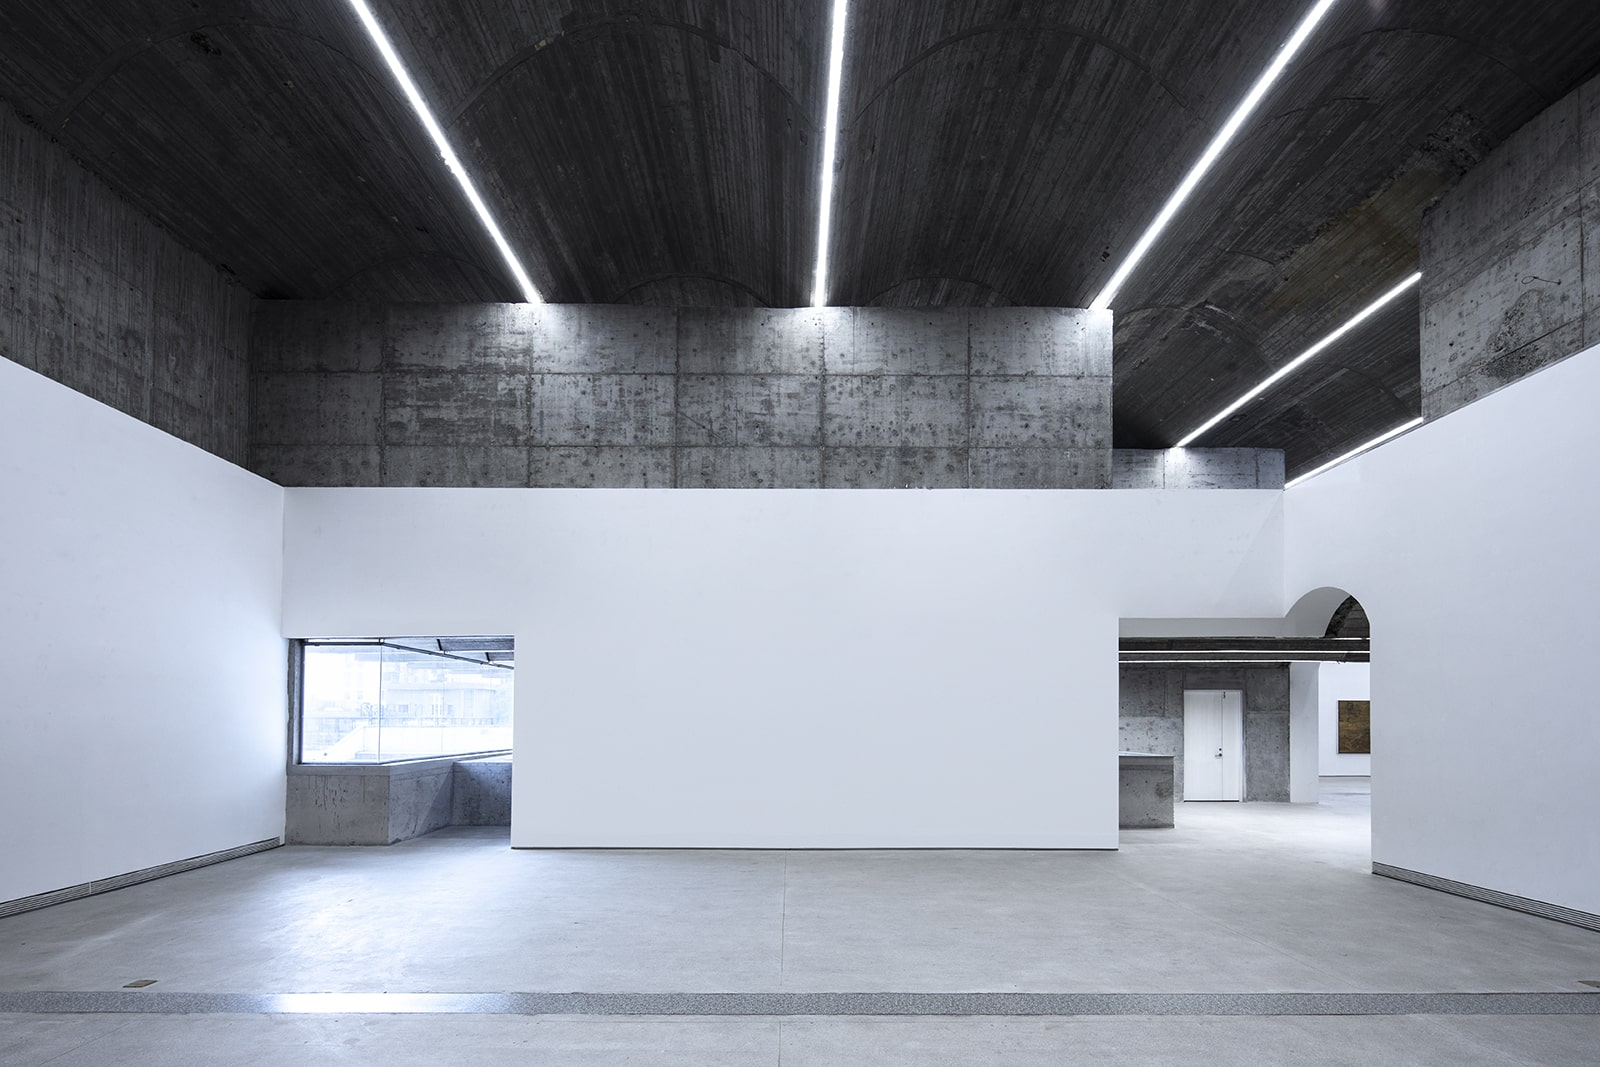 Taizhou Contemporary Art Museum  - 7.2 50